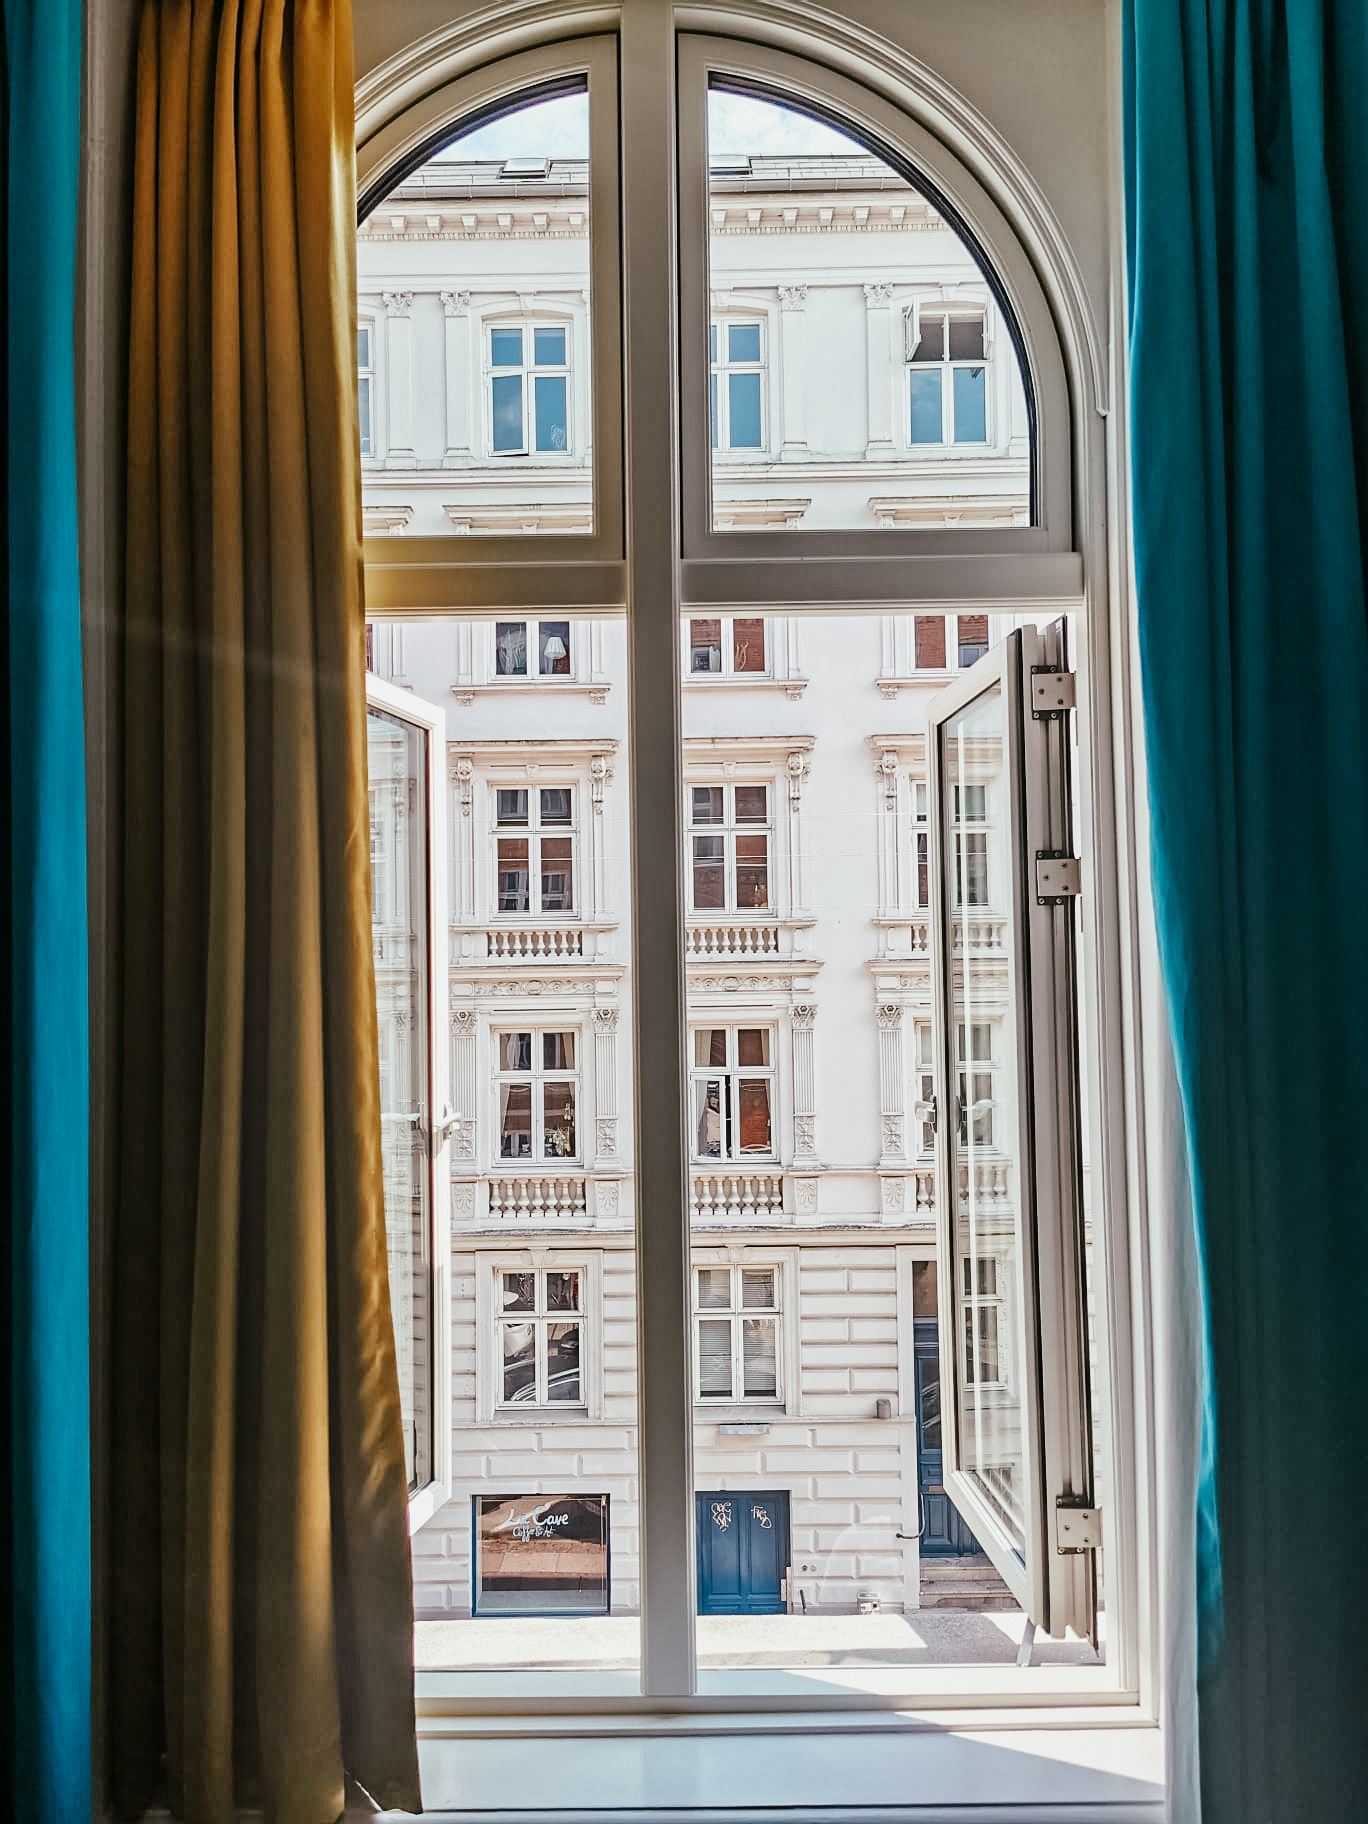 Andersen boutique hotel - Copenhagen's most charming and colorful hotel 1